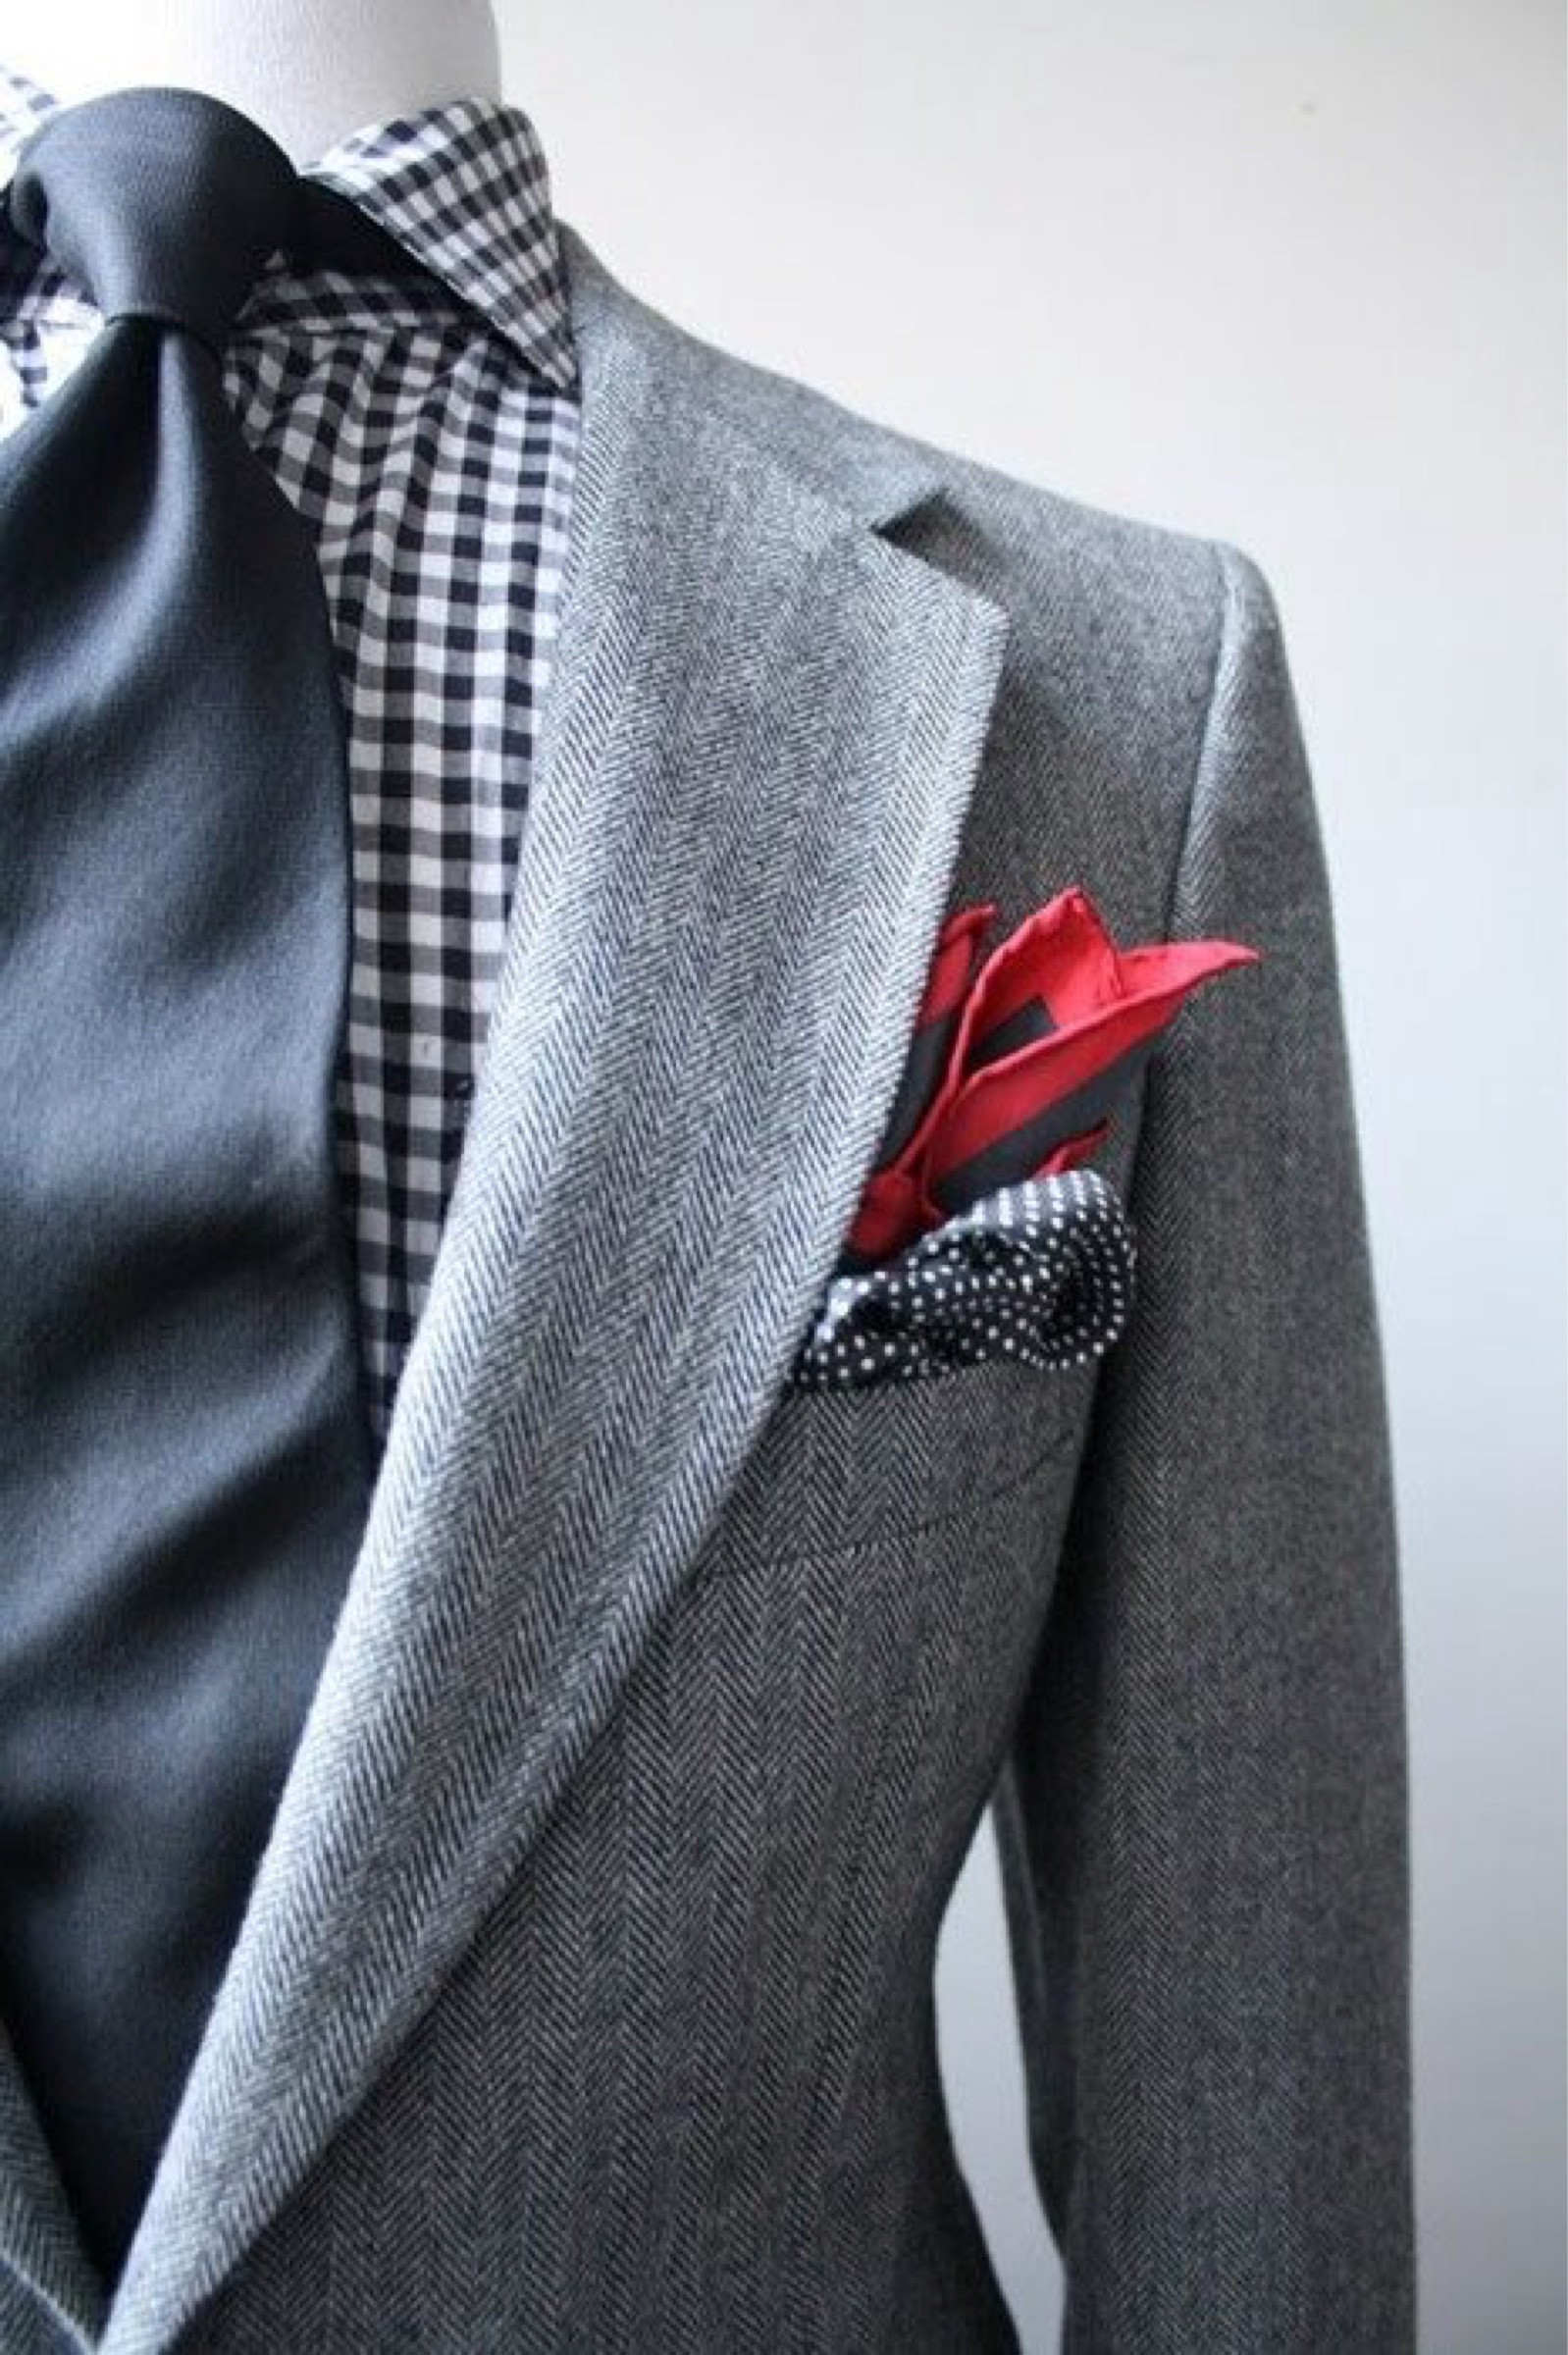 Wear your suit like a pro herbert william mensware medium whether youre going to a job interview work a wedding church or even a date wearing a suit isnt something you want to take lightly ccuart Images